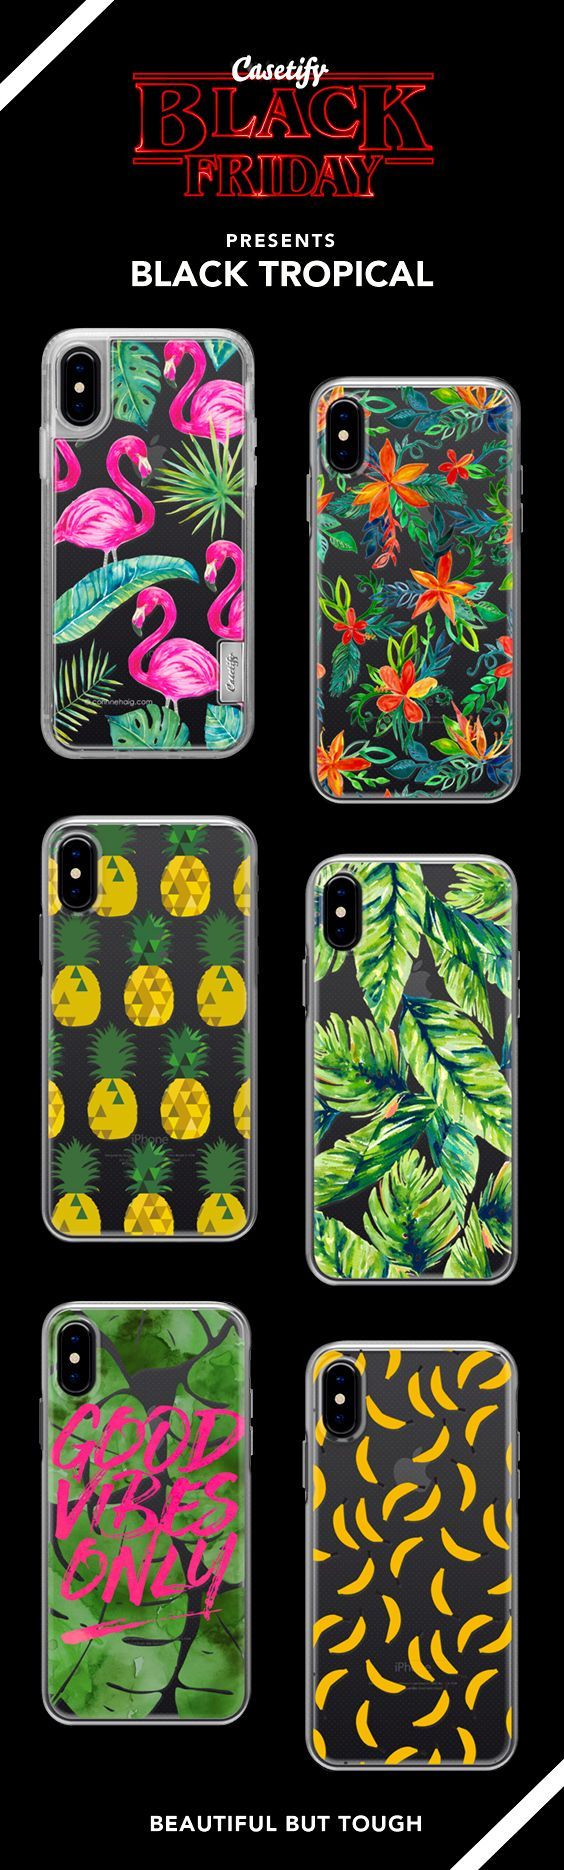 Black Friday Special Most Wanted Tropical iPhone X